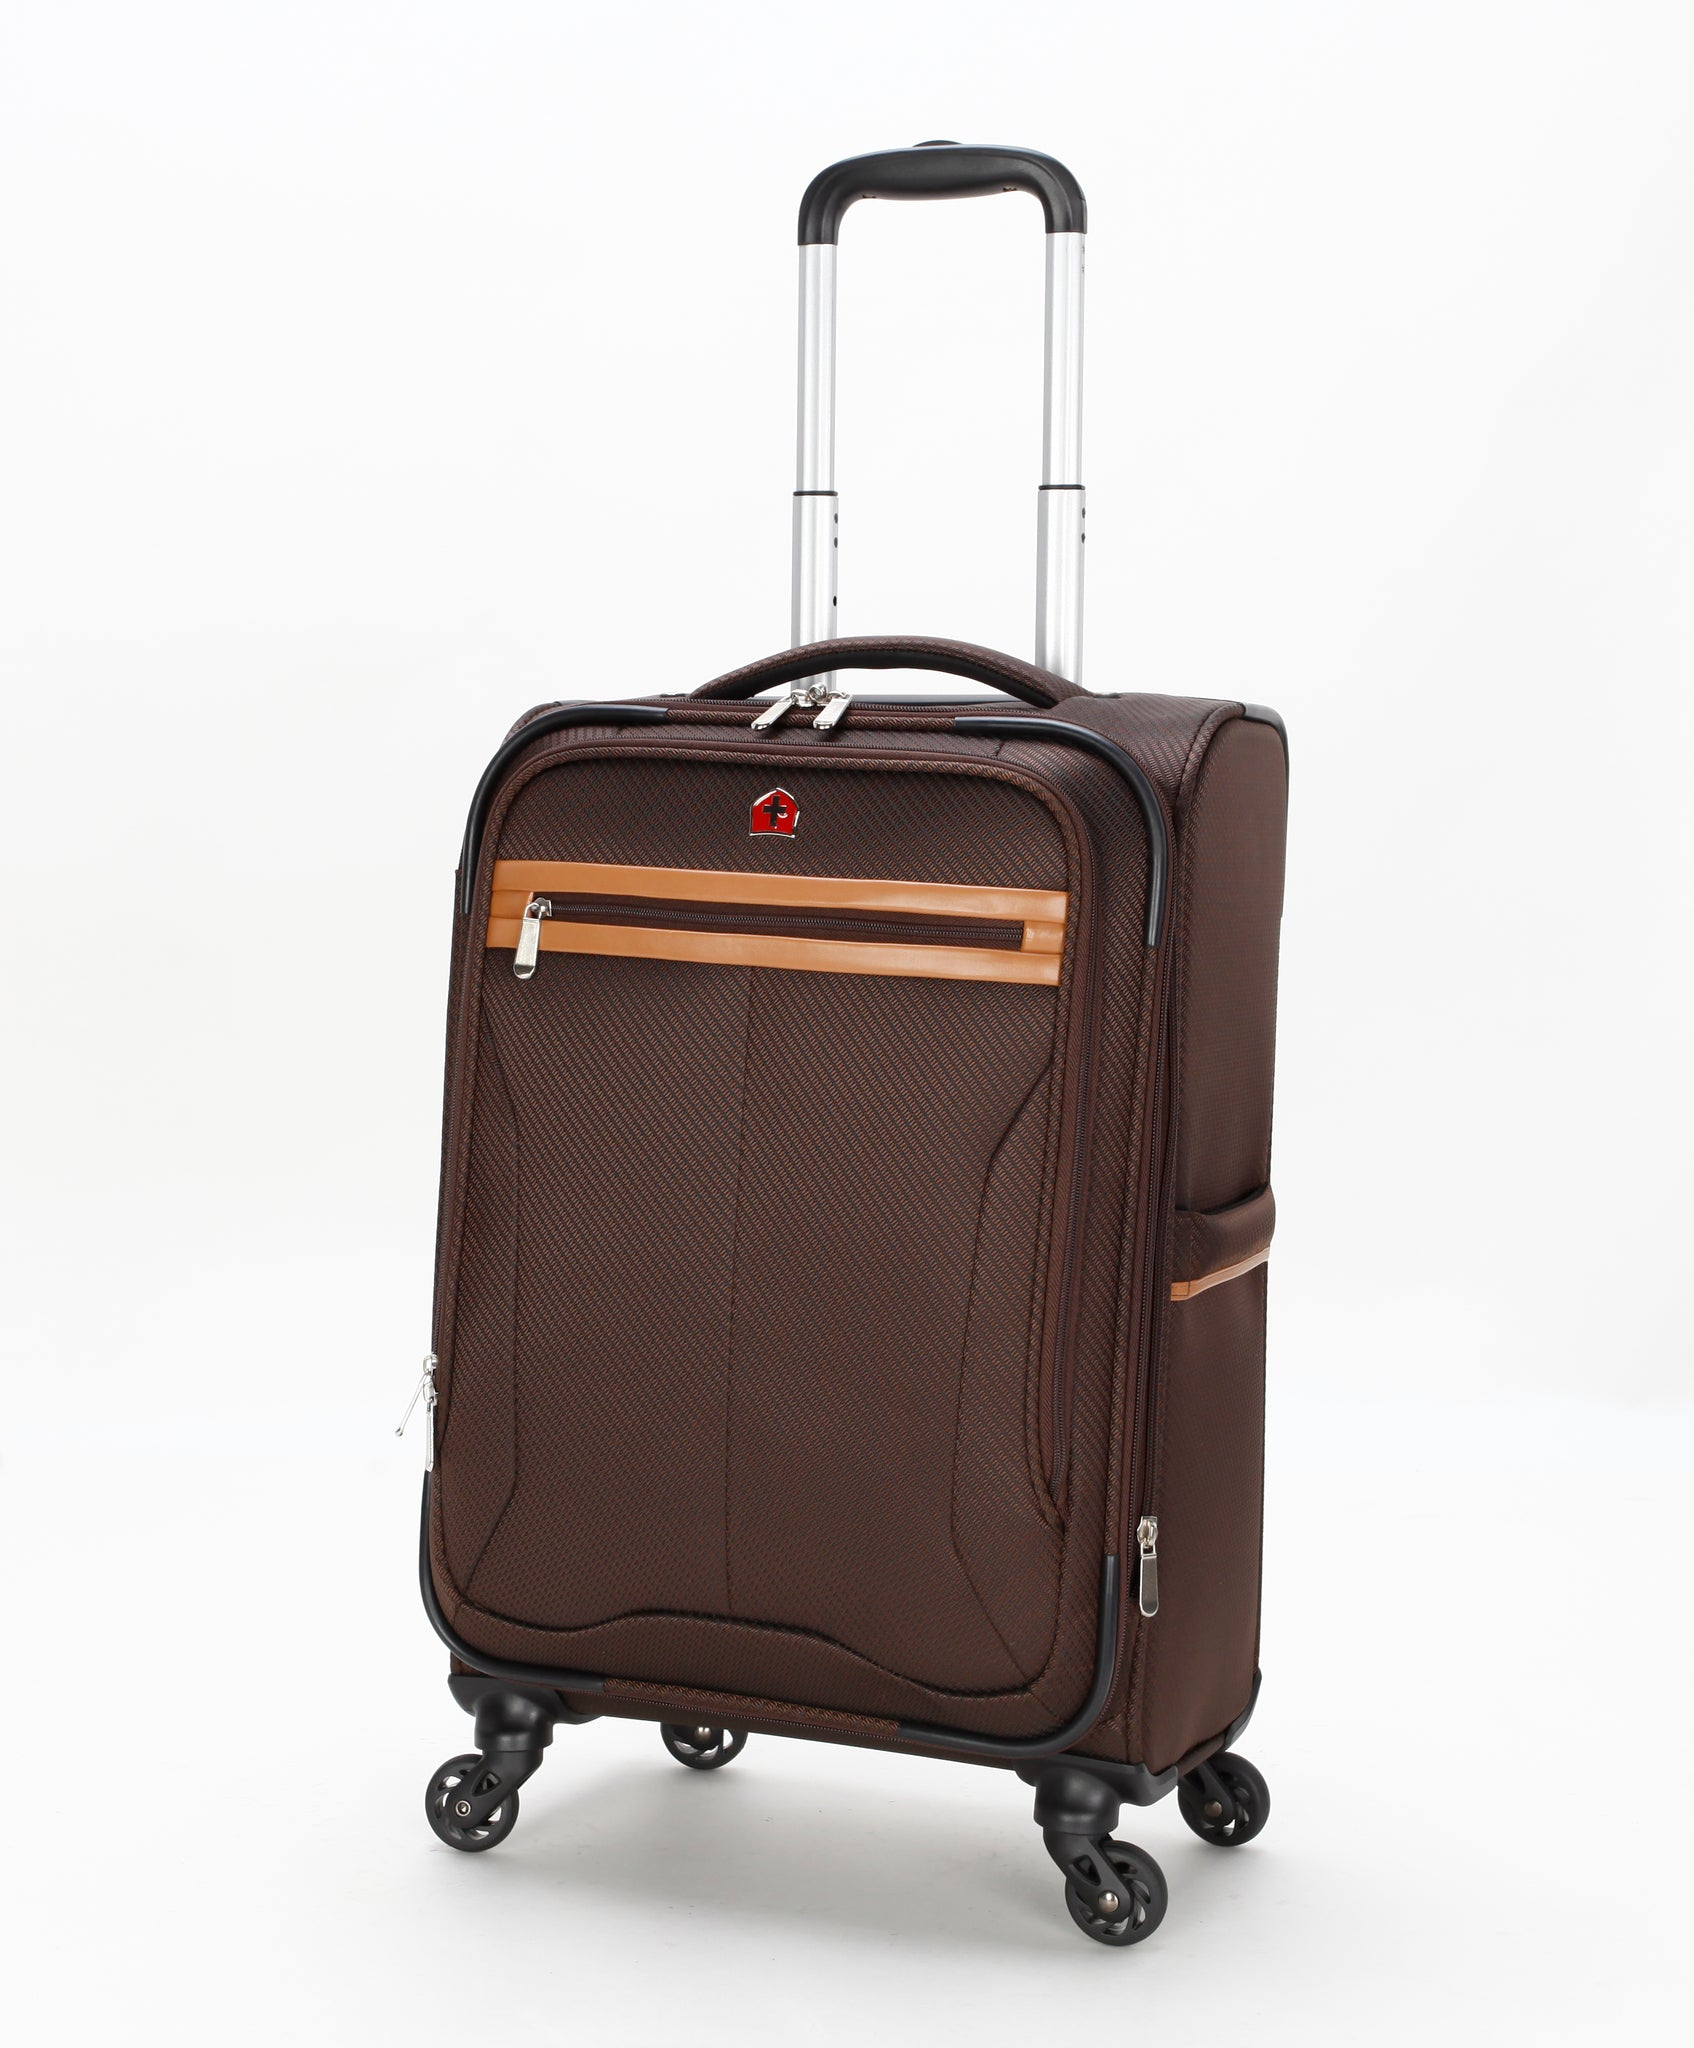 Luggage Softside